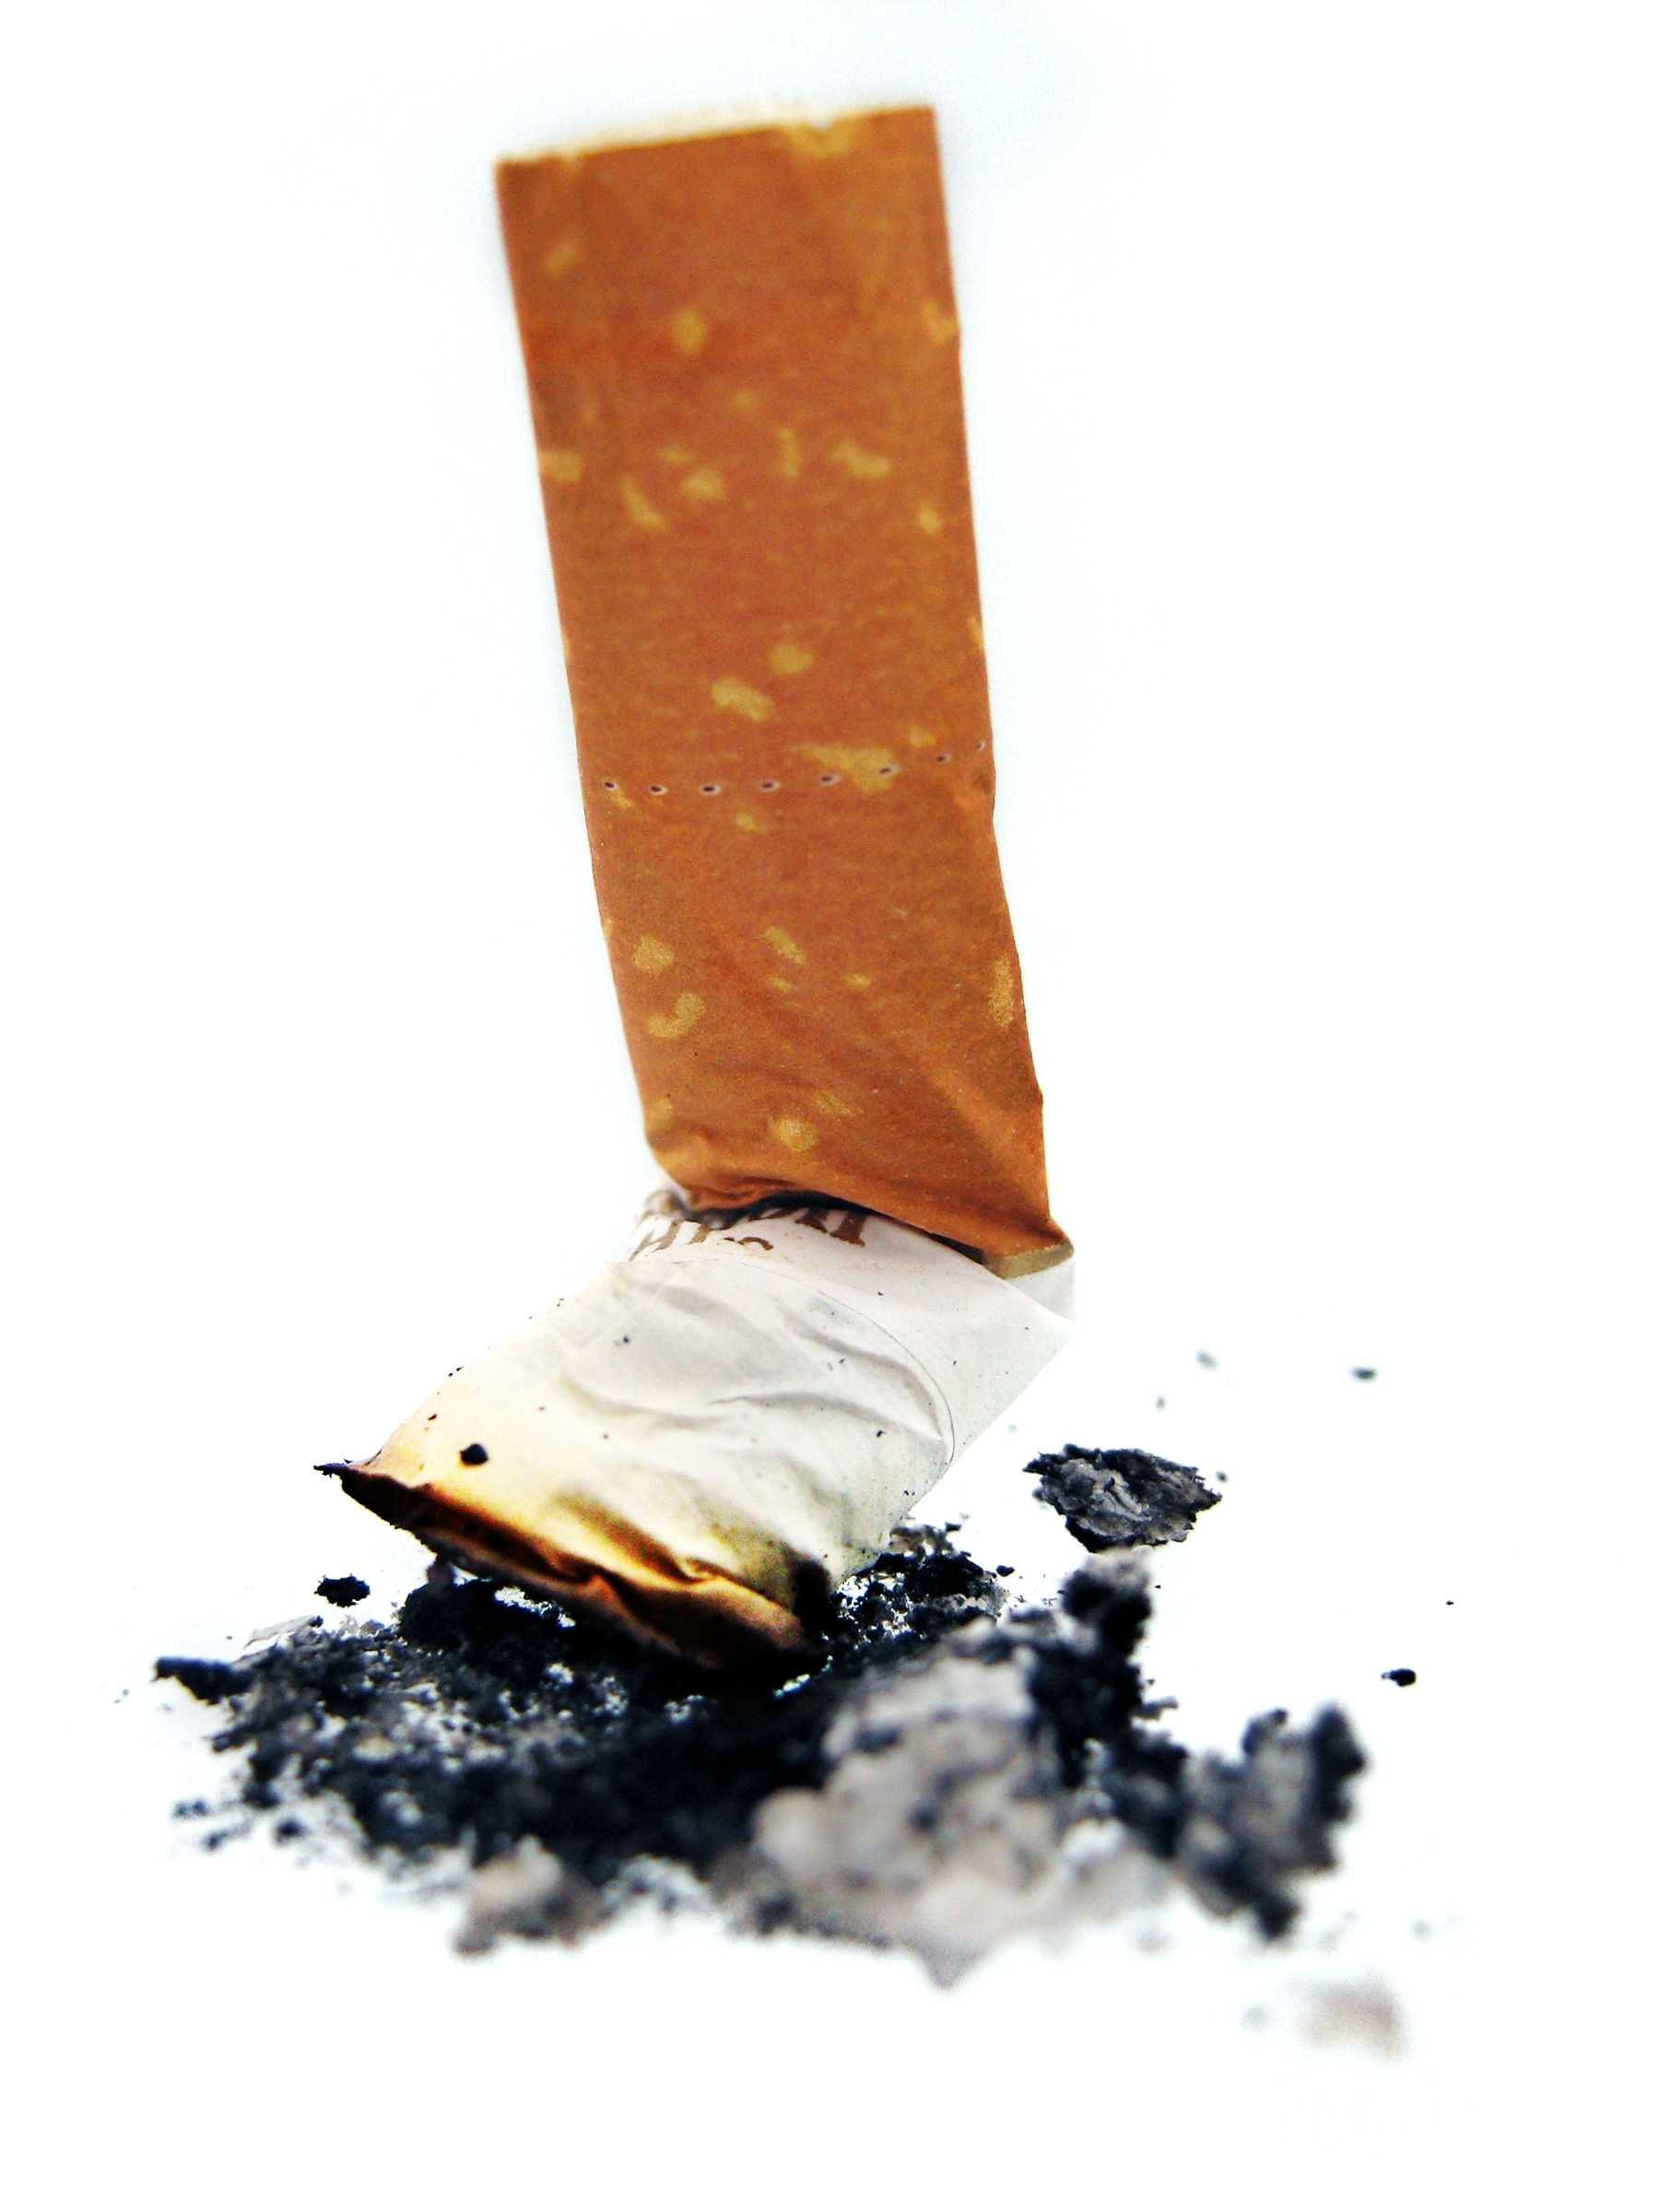 Cigarette butt, Photo, Photography, Product, Quit, HQ Photo